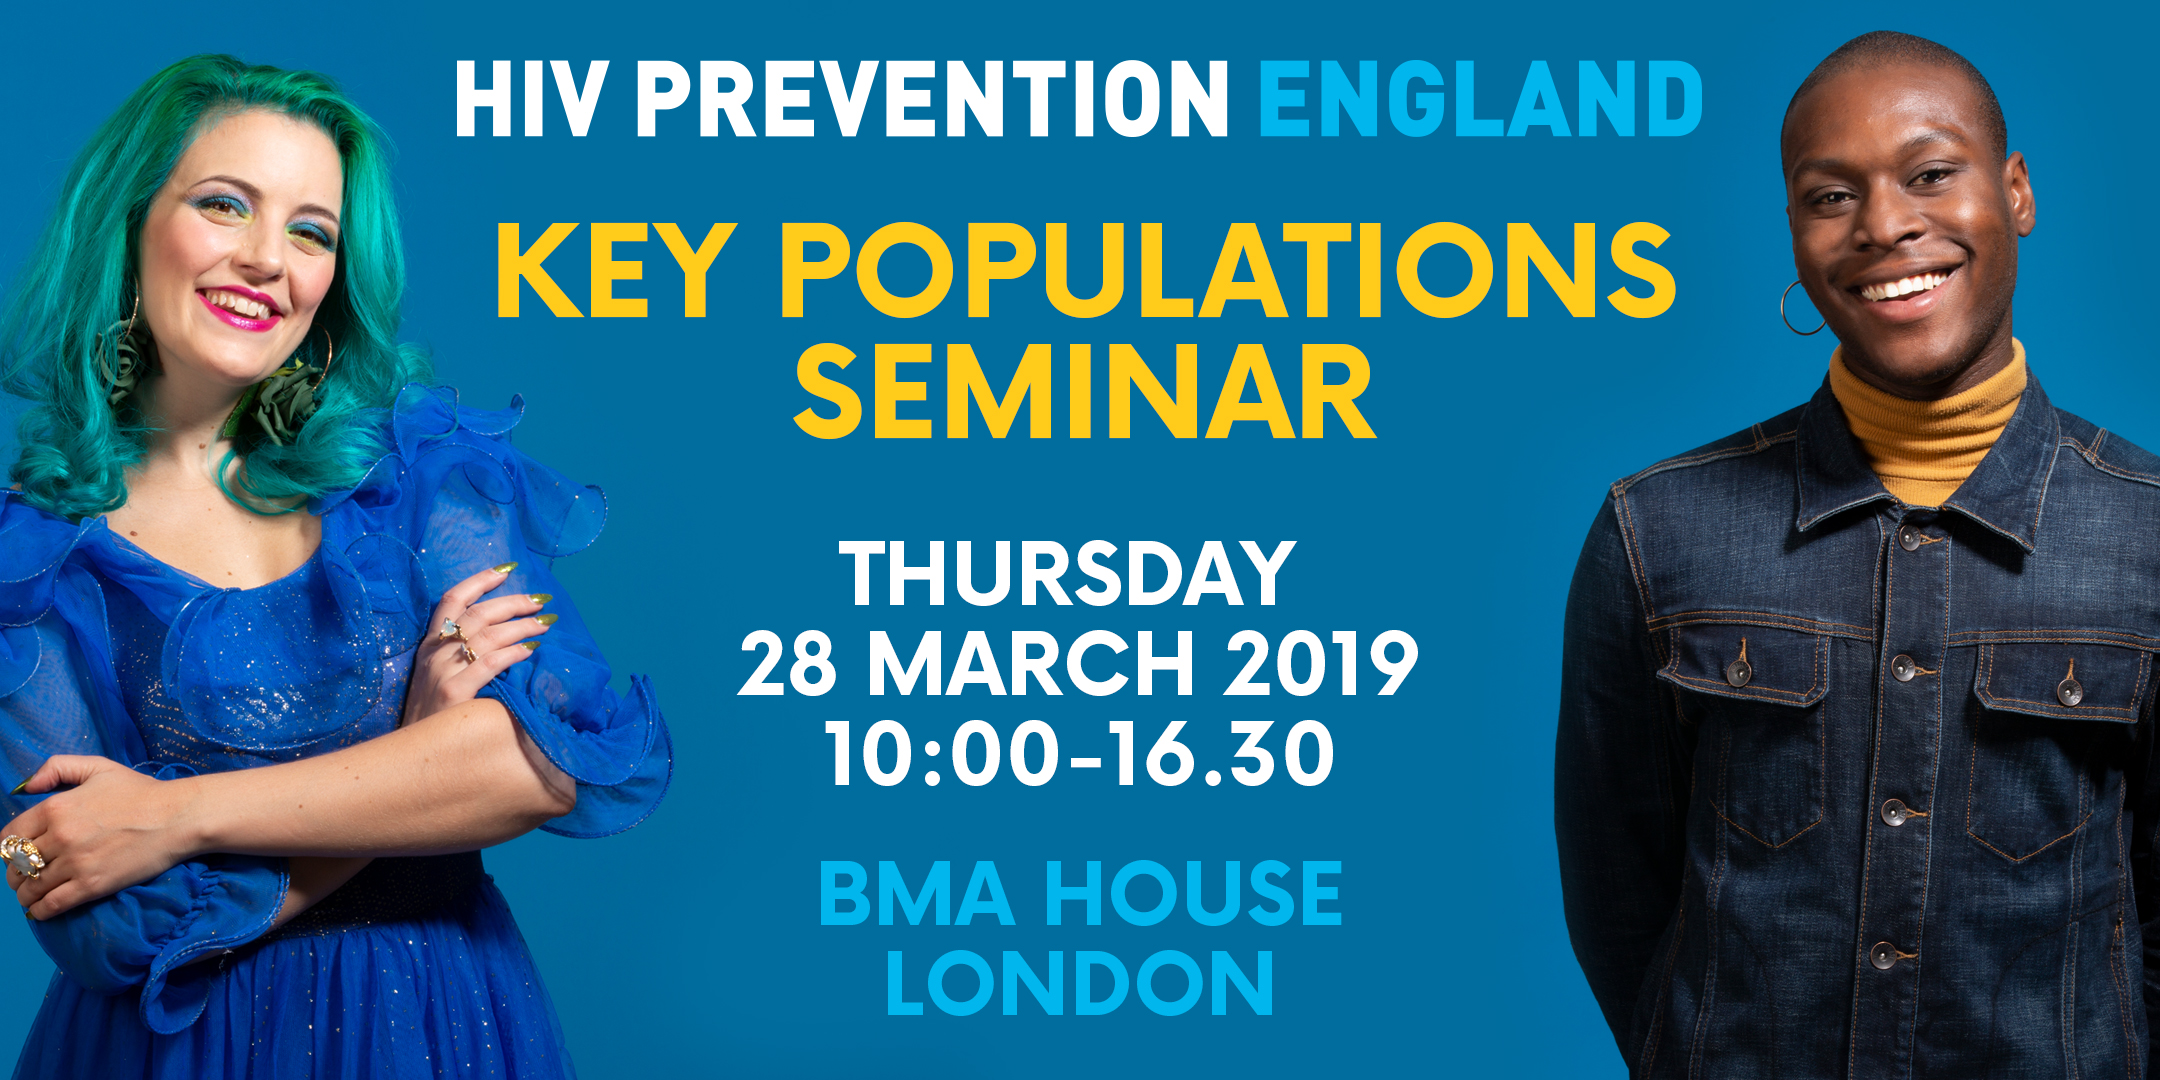 Key Populations seminar, Thursday 28 March 2019, 10-4.30, BMA House, London